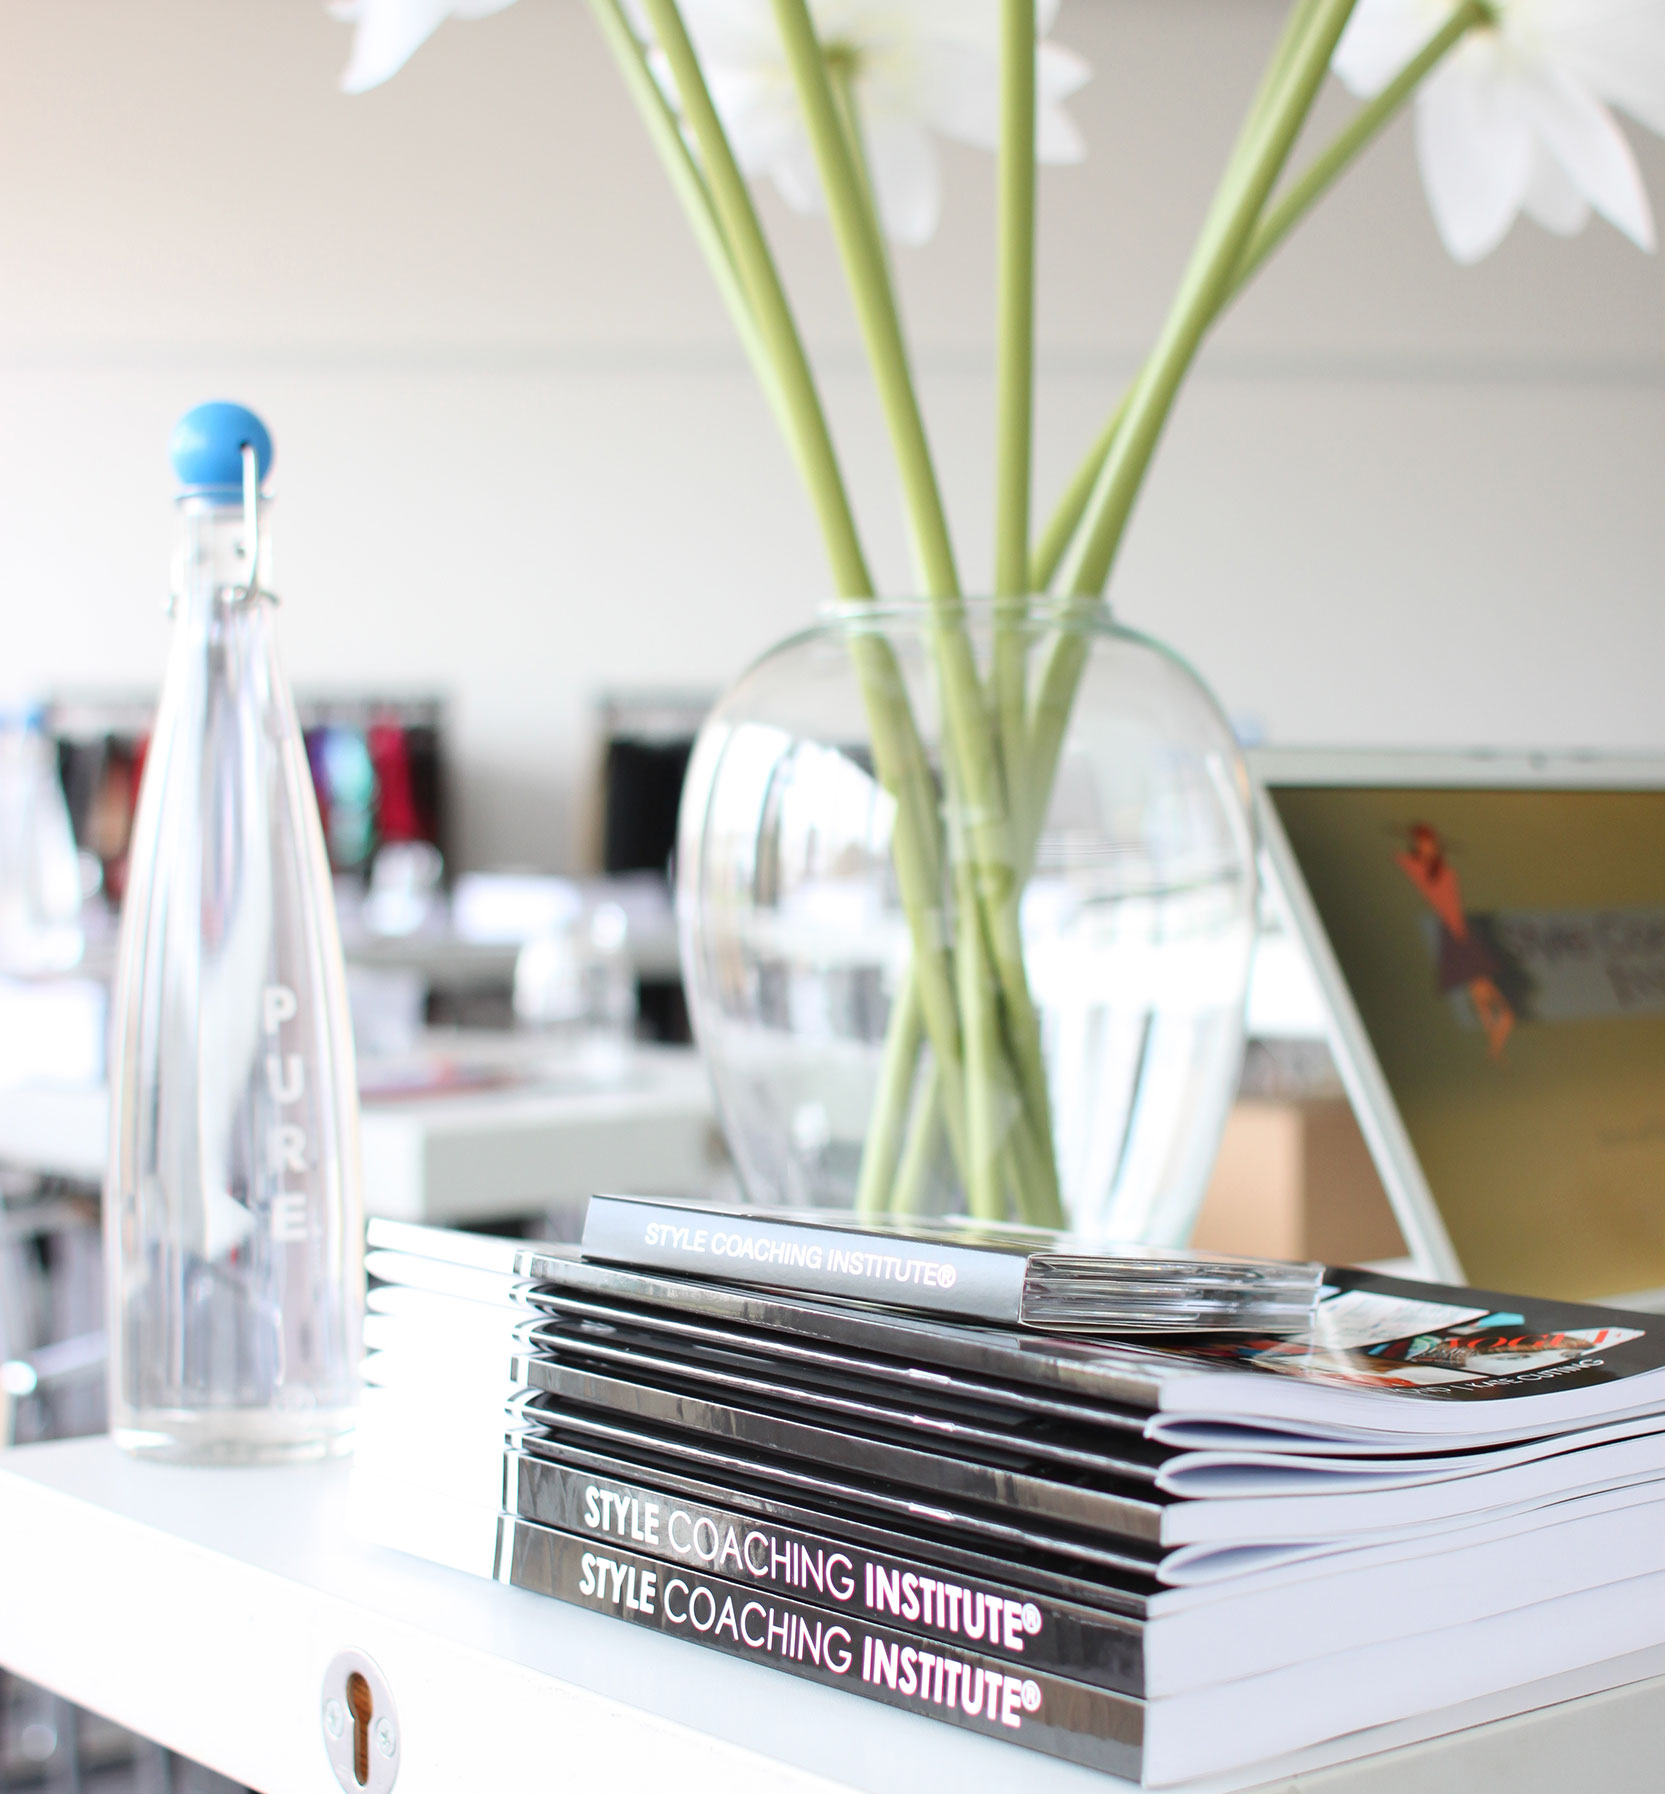 Style Coaching online course books on a desk